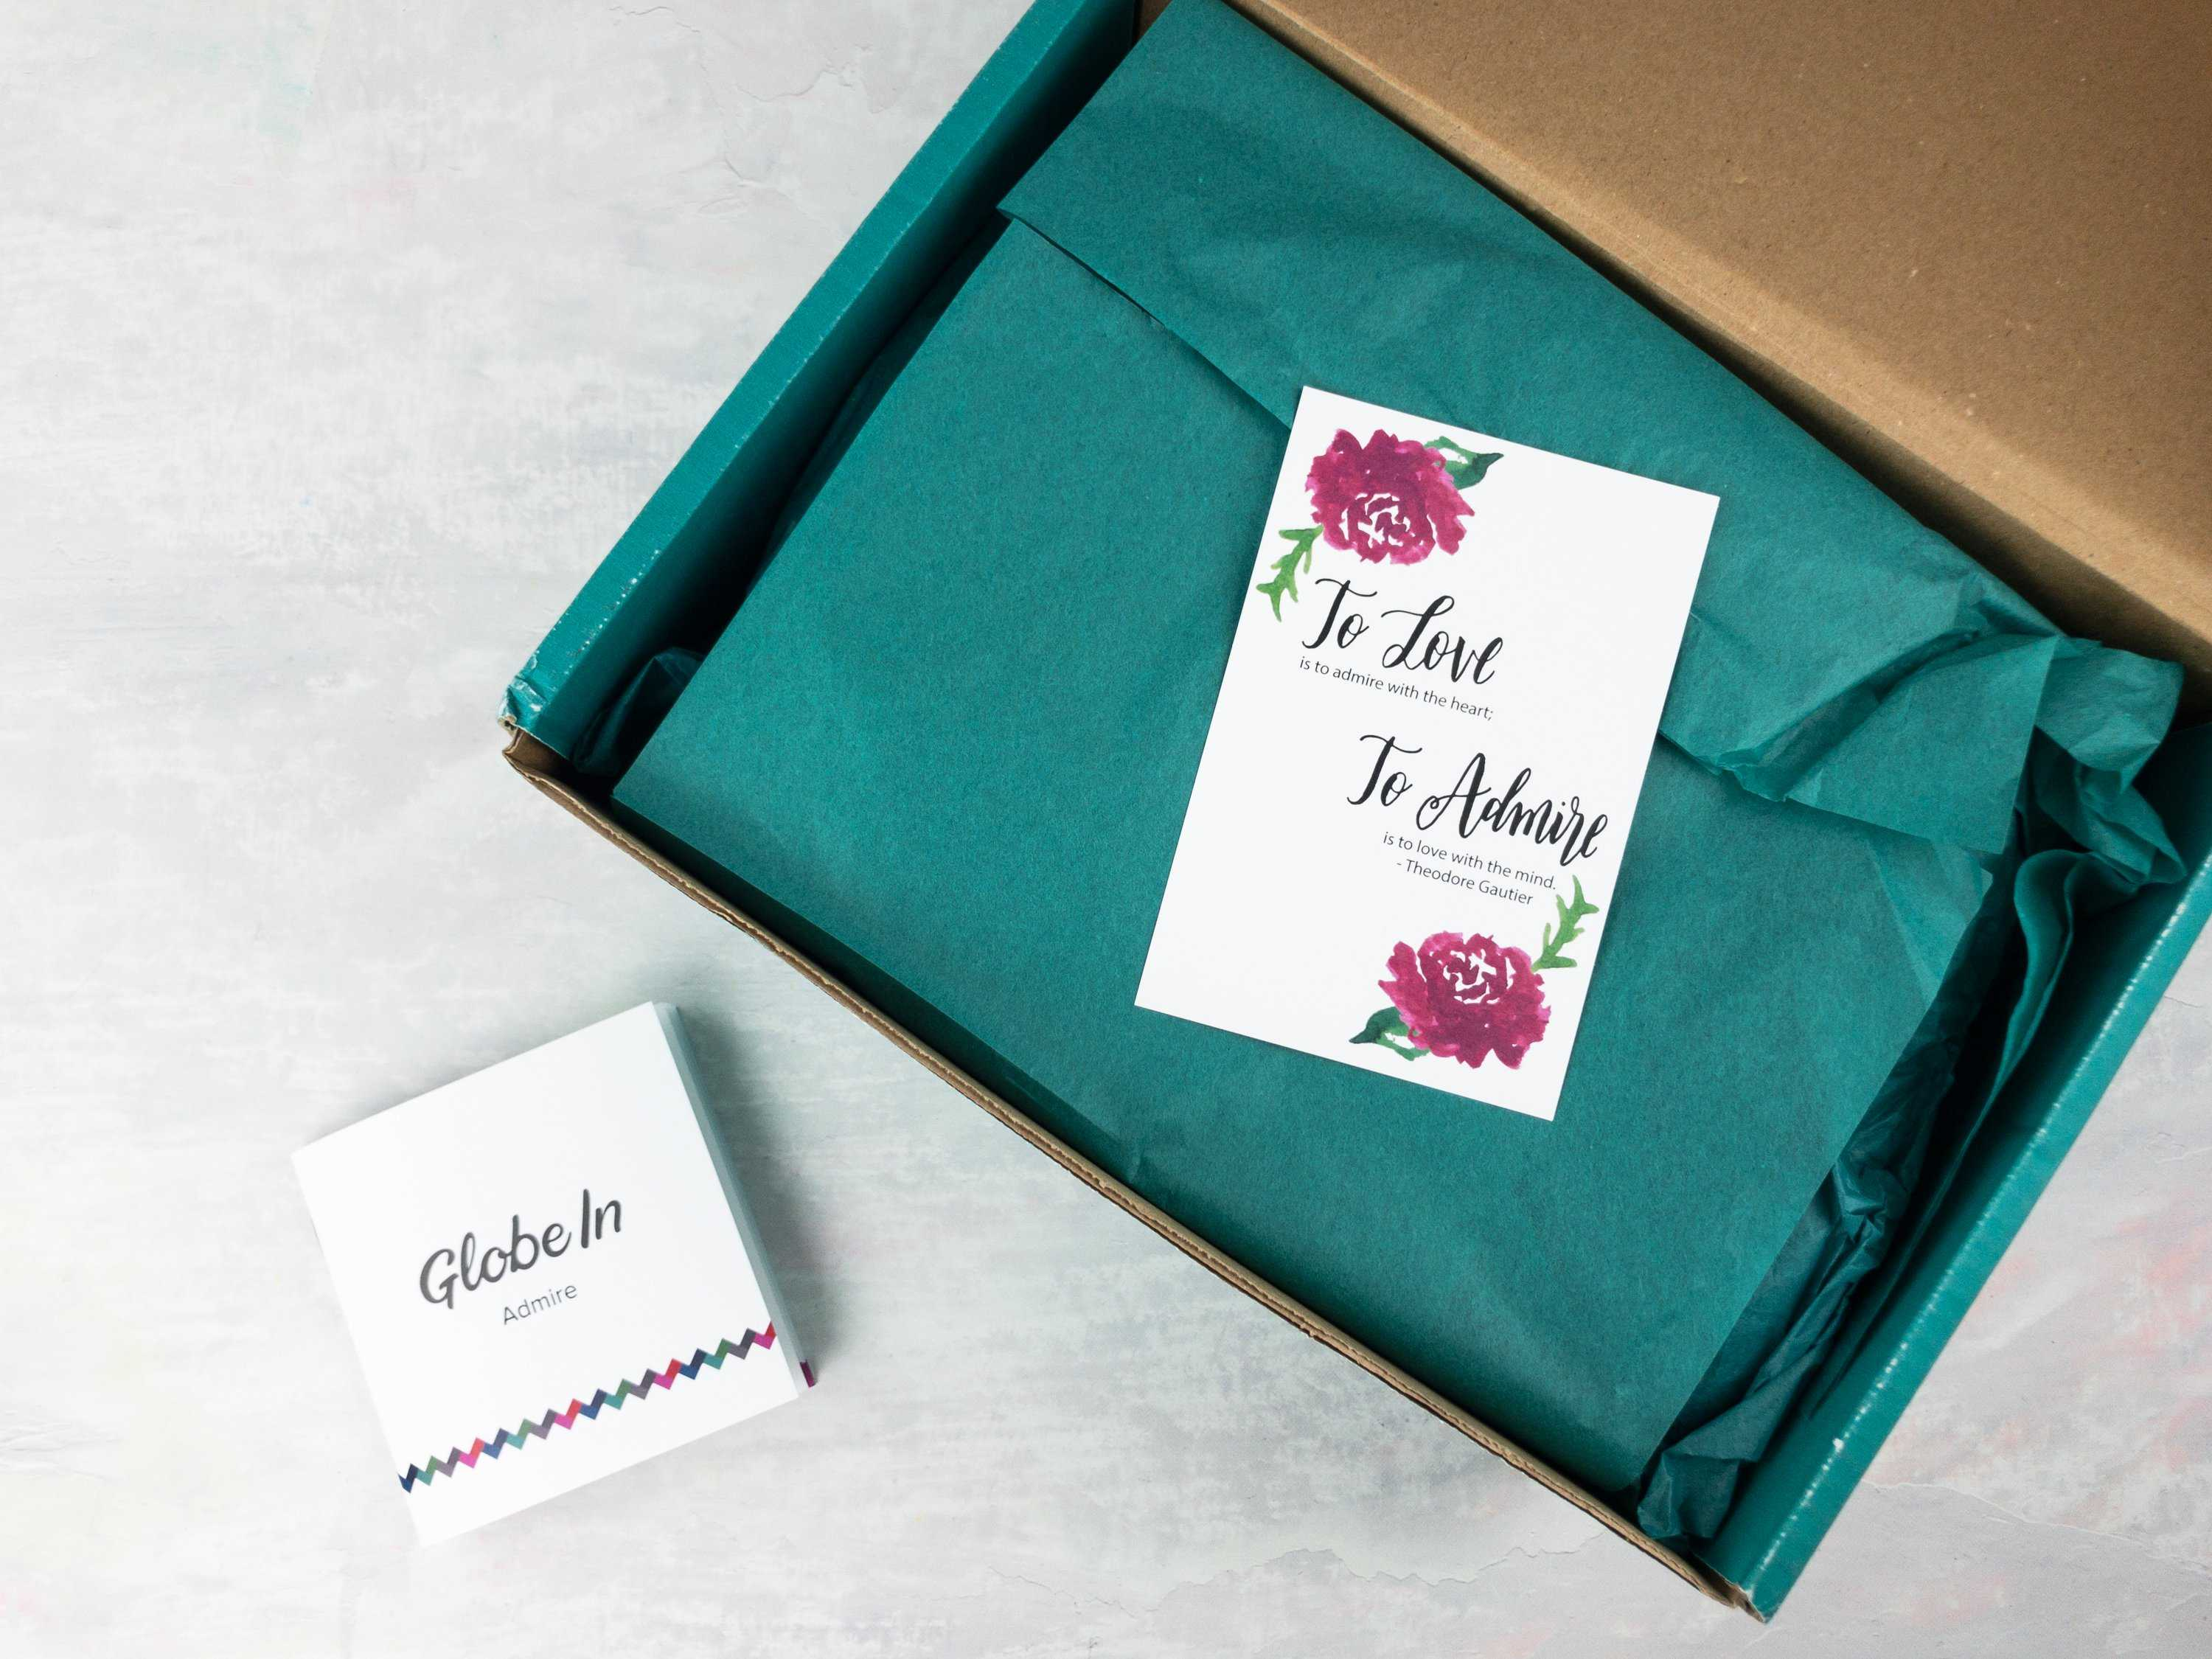 GlobeIn Limited Edition Admire Box Review + Coupon